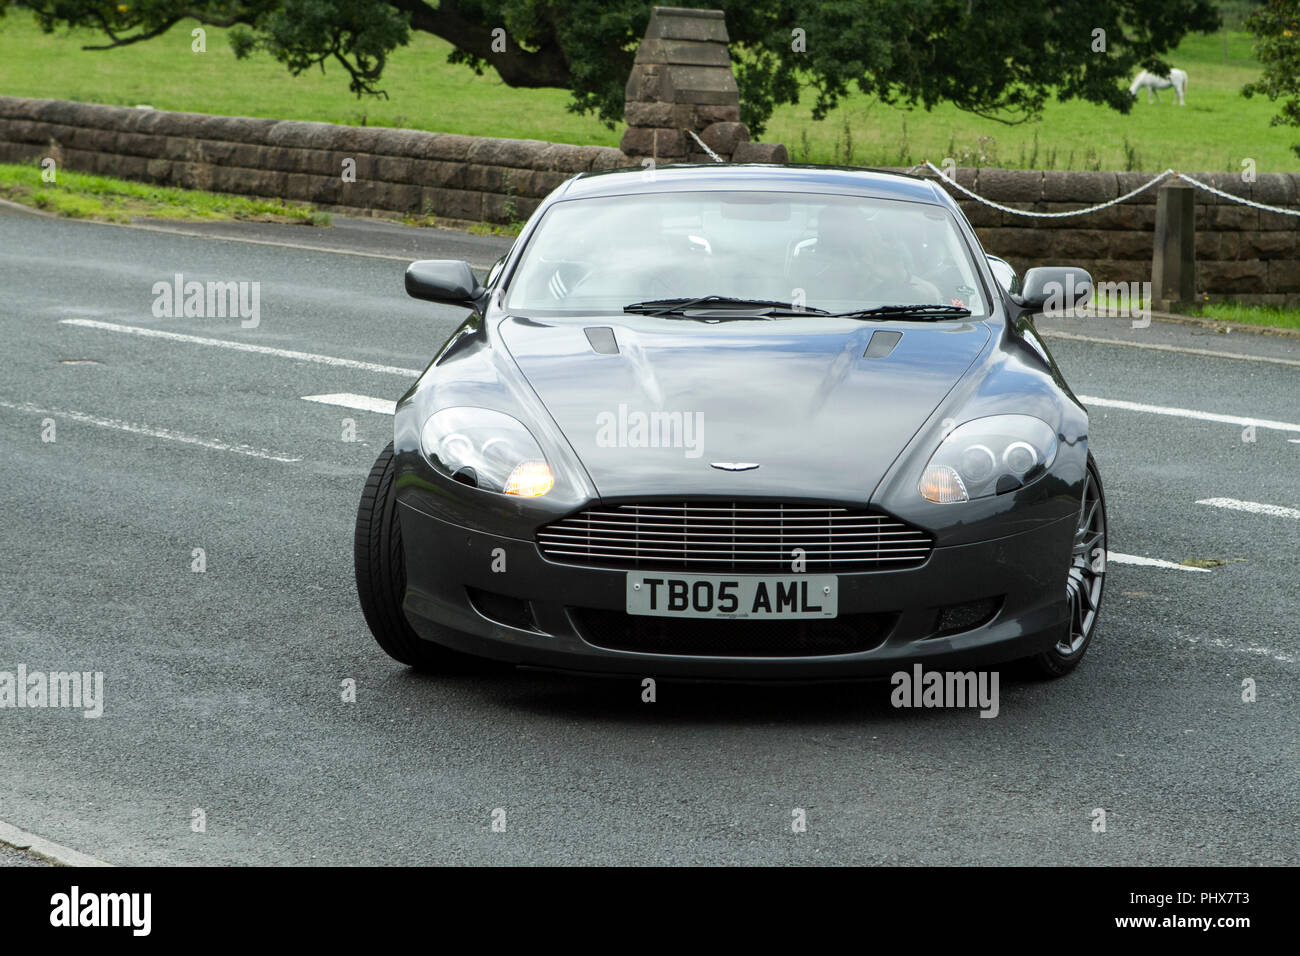 2005 Aston Martin Db9 Auto At Hoghton Towers Annual Classic Vintage Car Rally Uk Stock Photo Alamy